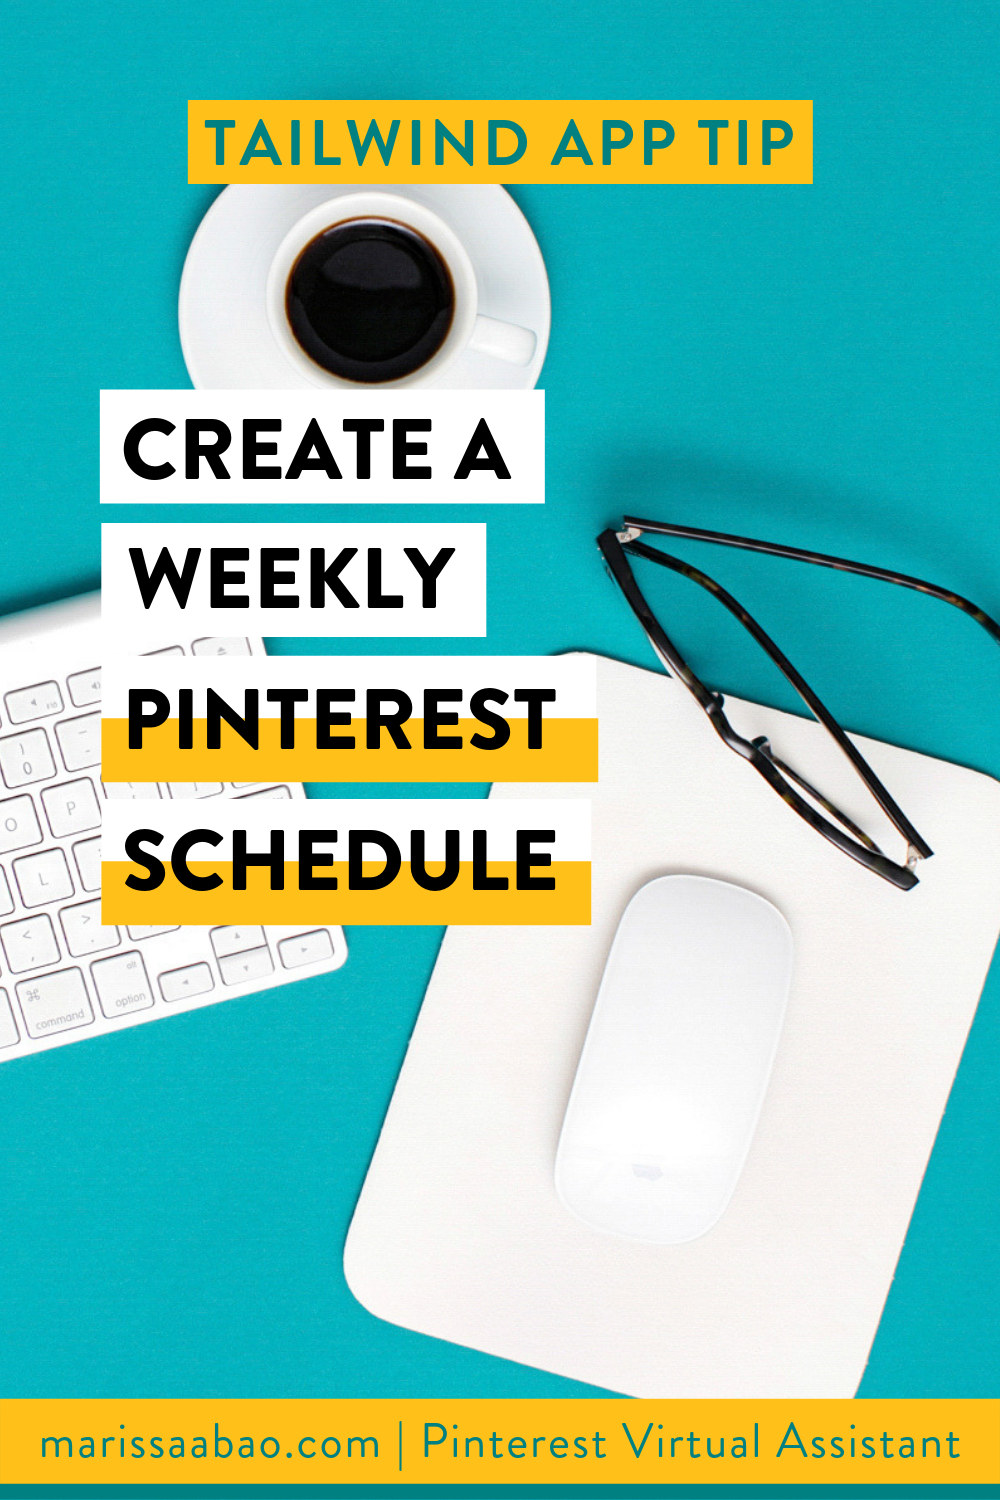 Tailwind App Tip: Create a Weekly Pinterest Schedule - #tailwindapp #virtualassistant #pinterestvirtualasistant #pinterestva #pinterestmarketing